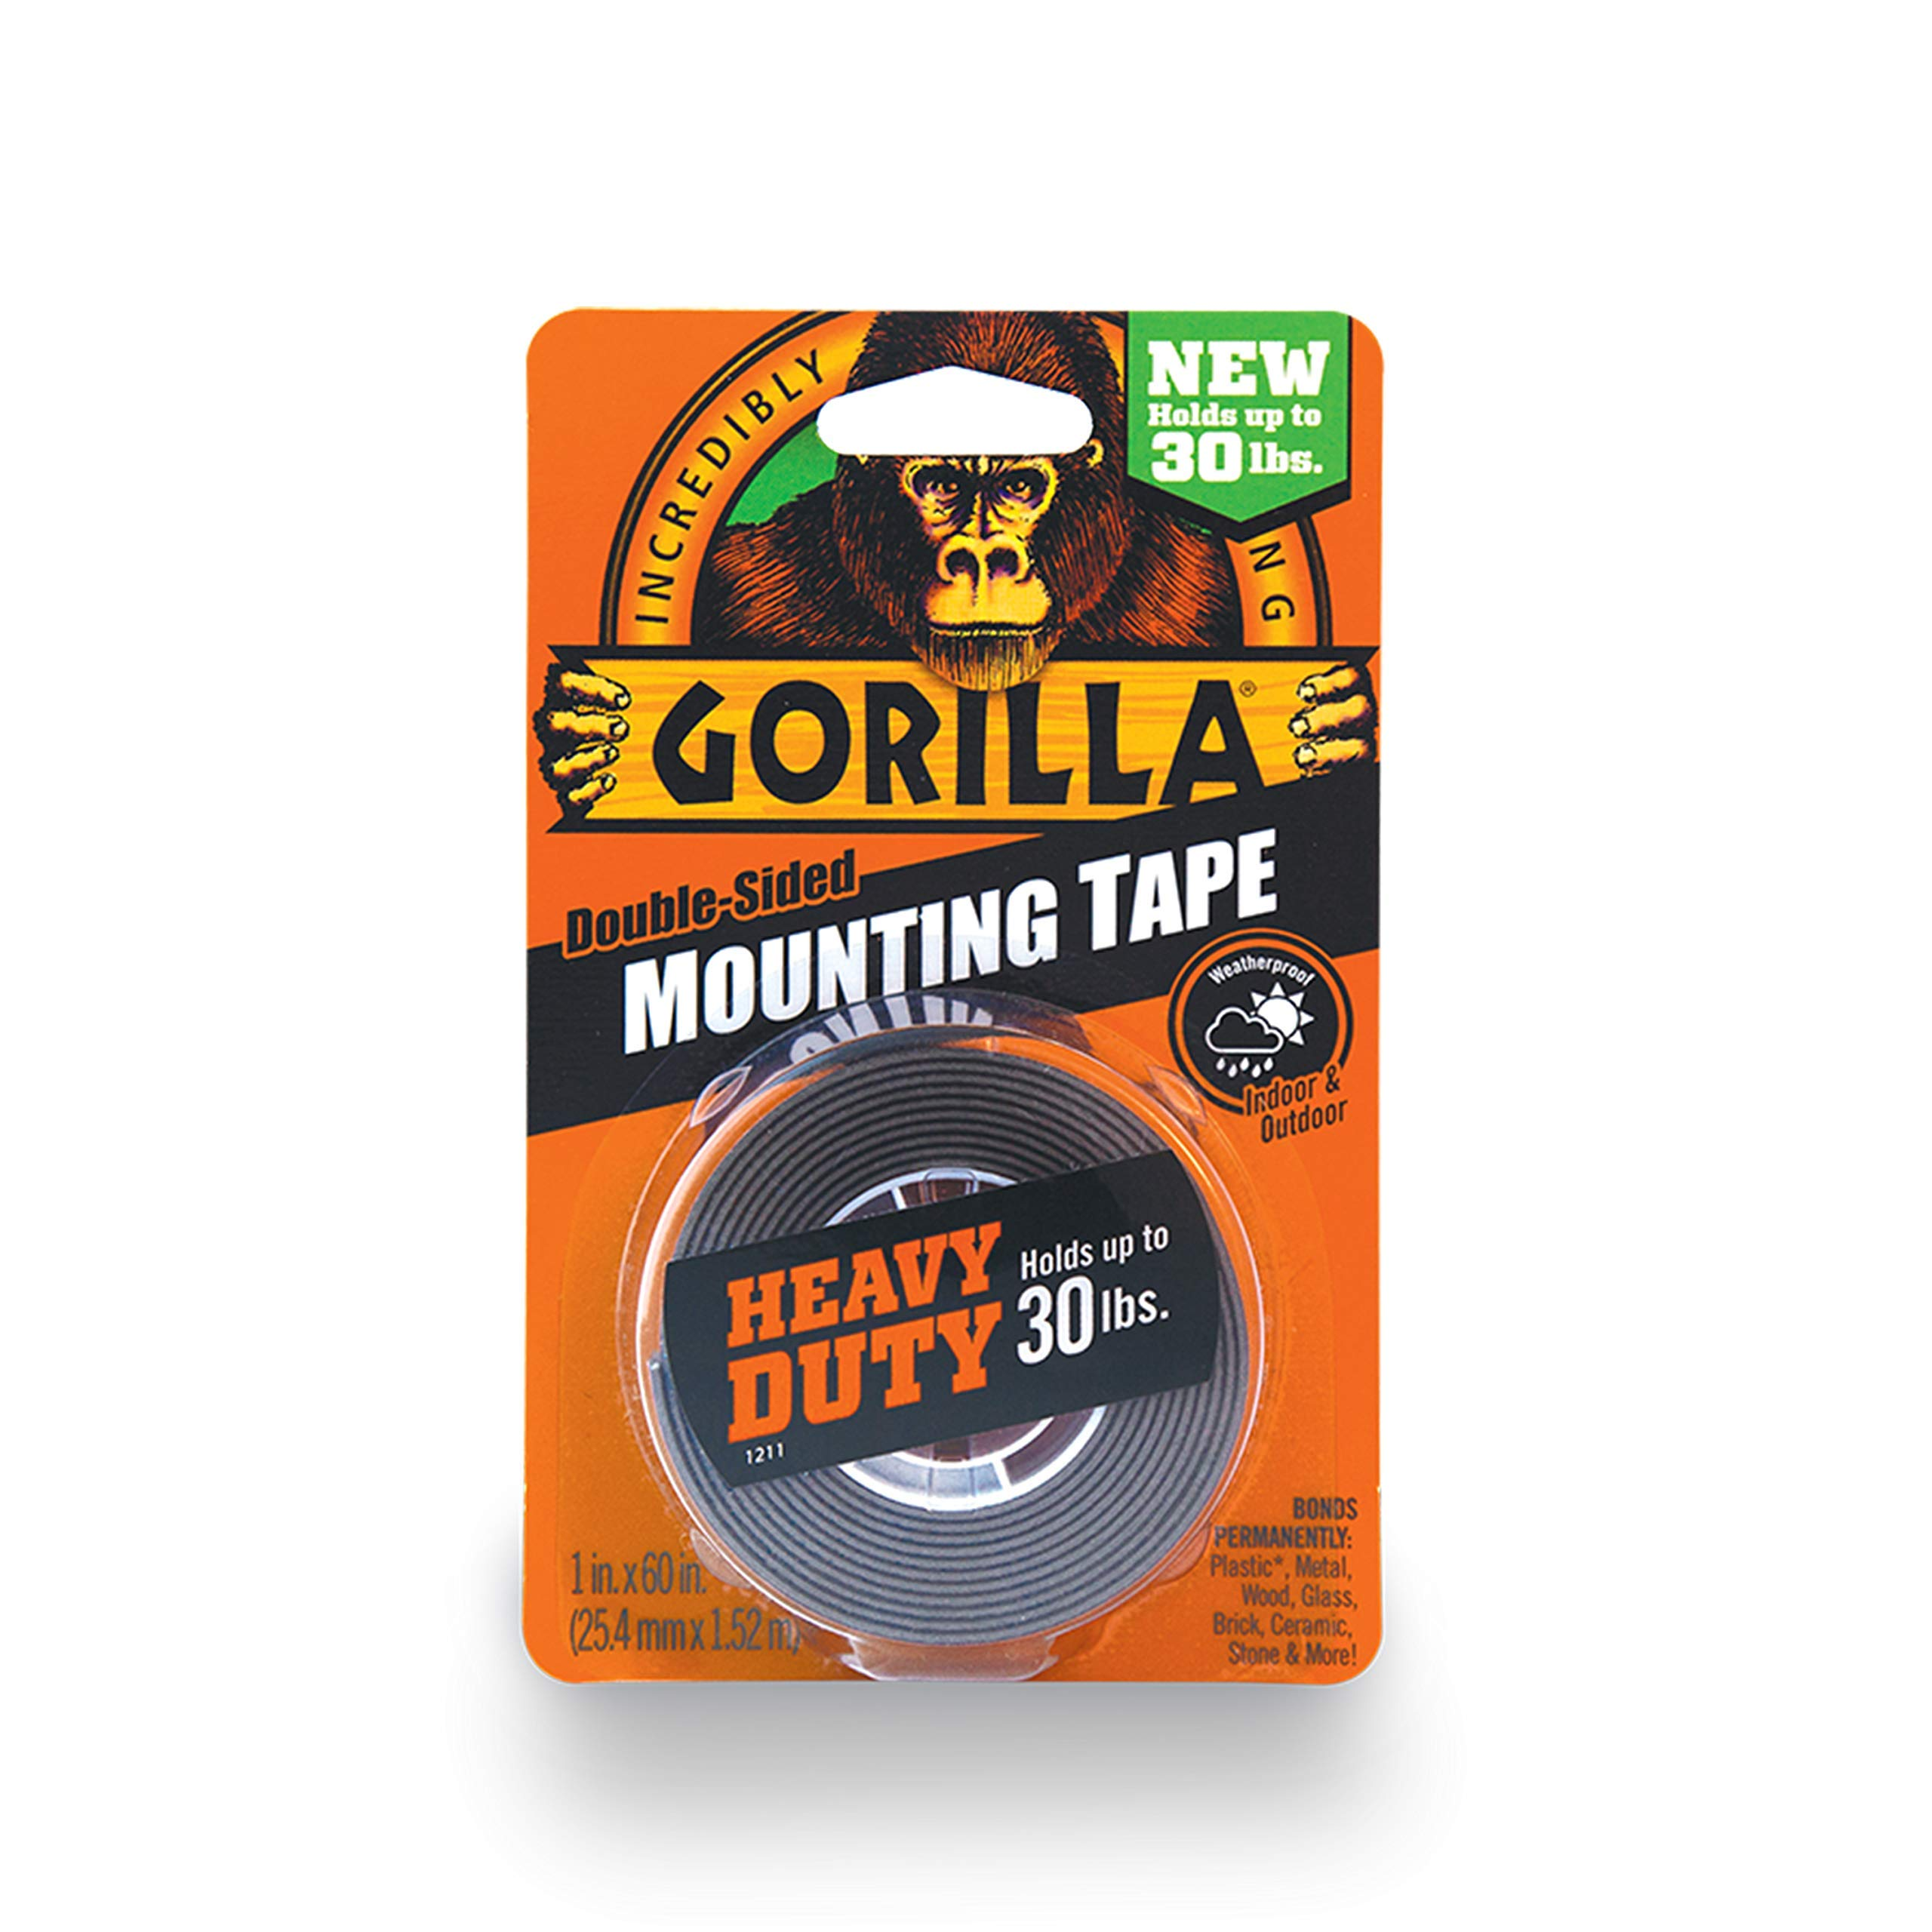 Gorilla Heavy Duty Double Sided Mounting Tape, 1 Inch x 60 Inches, Black [New Improved Version]